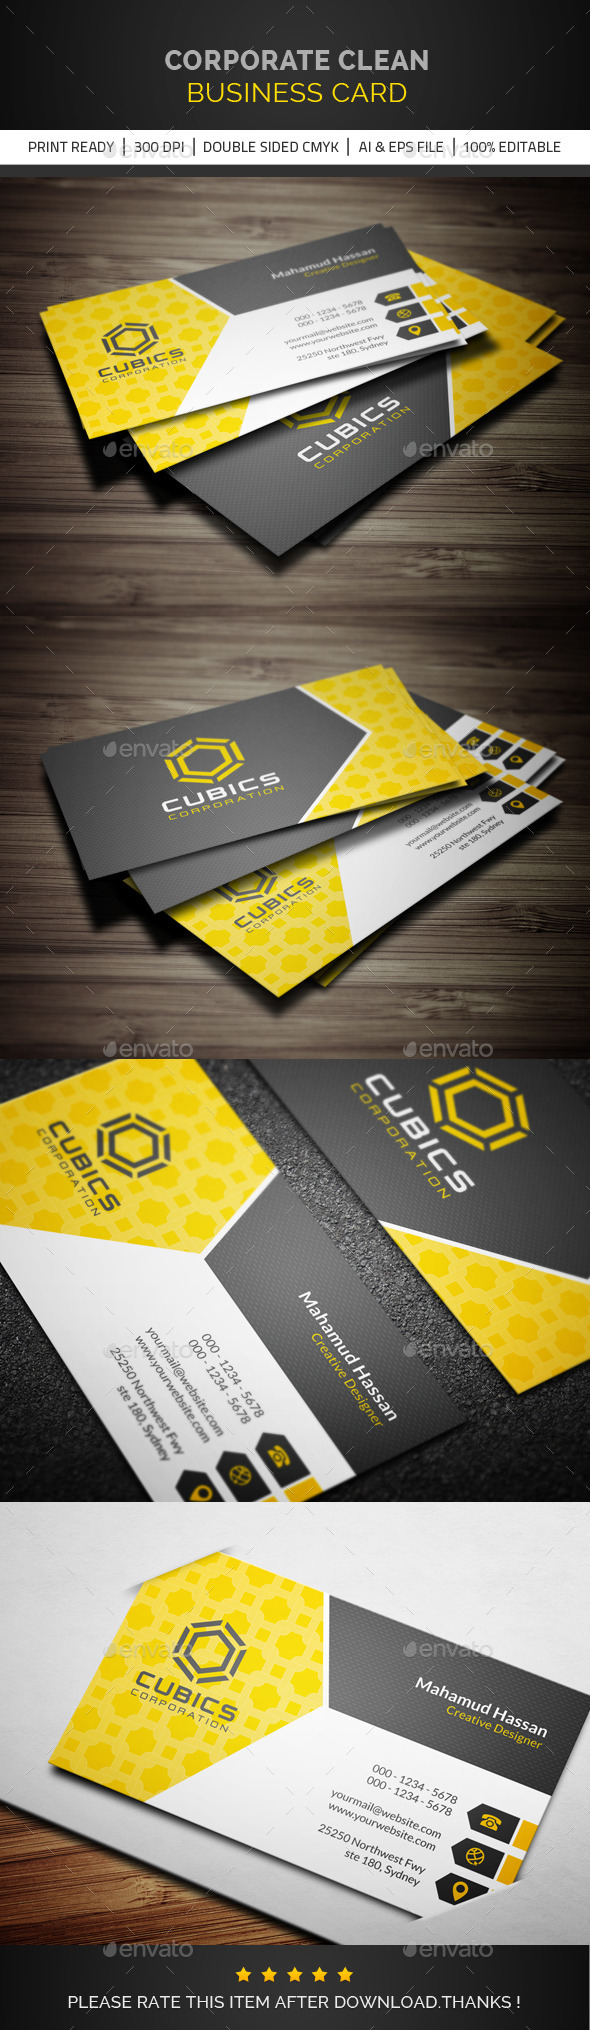 GraphicRiver Corporate Clean Business Card 11022504